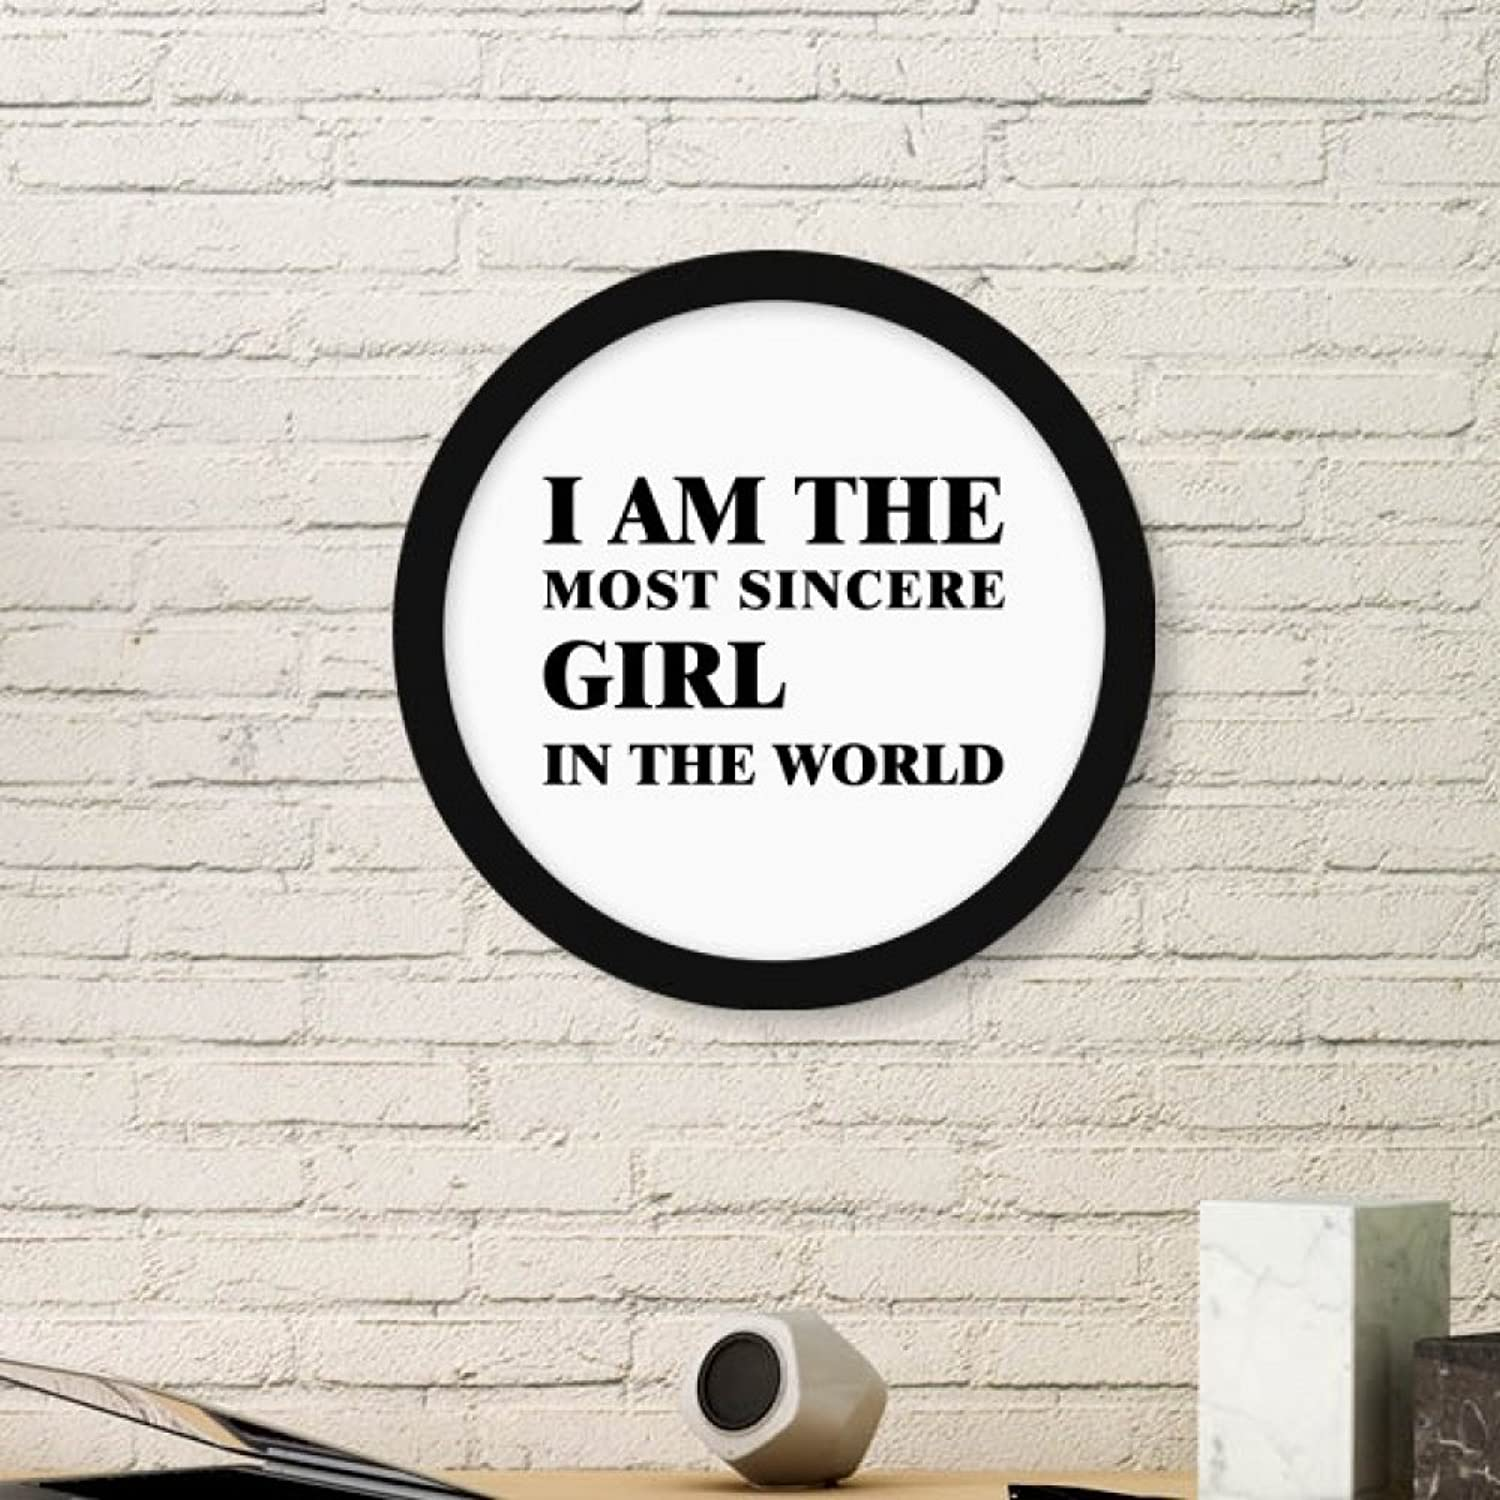 I Am The Sincere Girl Art Painting Picture Photo Wooden Round Frame Home Wall Decor Gift